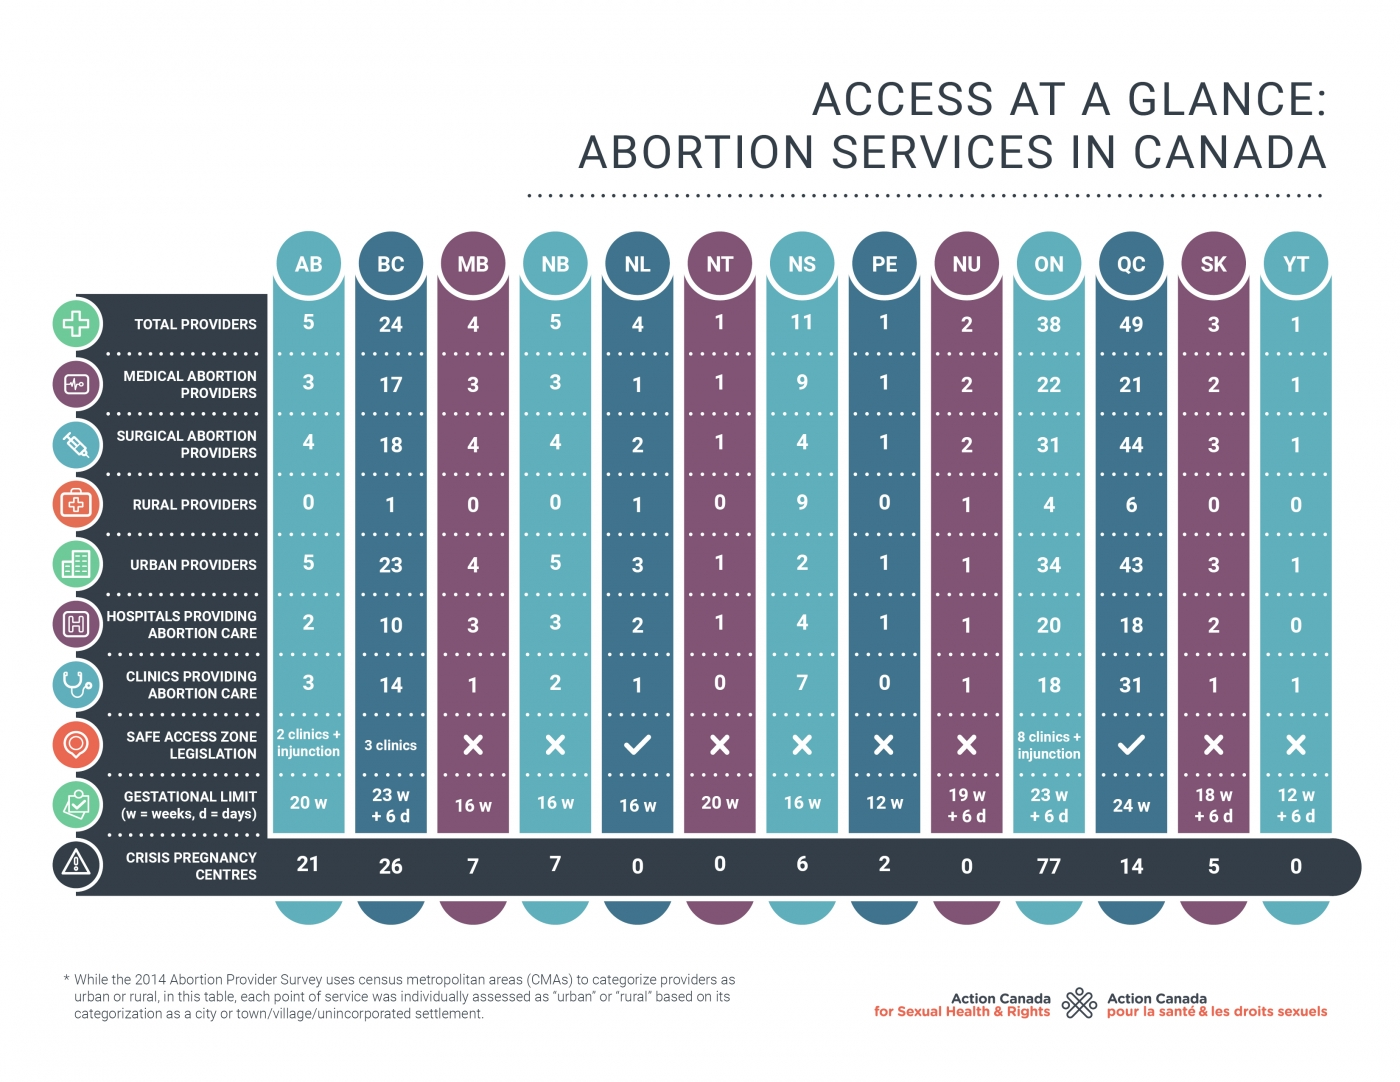 Table representing availability of abortion services in each province and territory of Canada